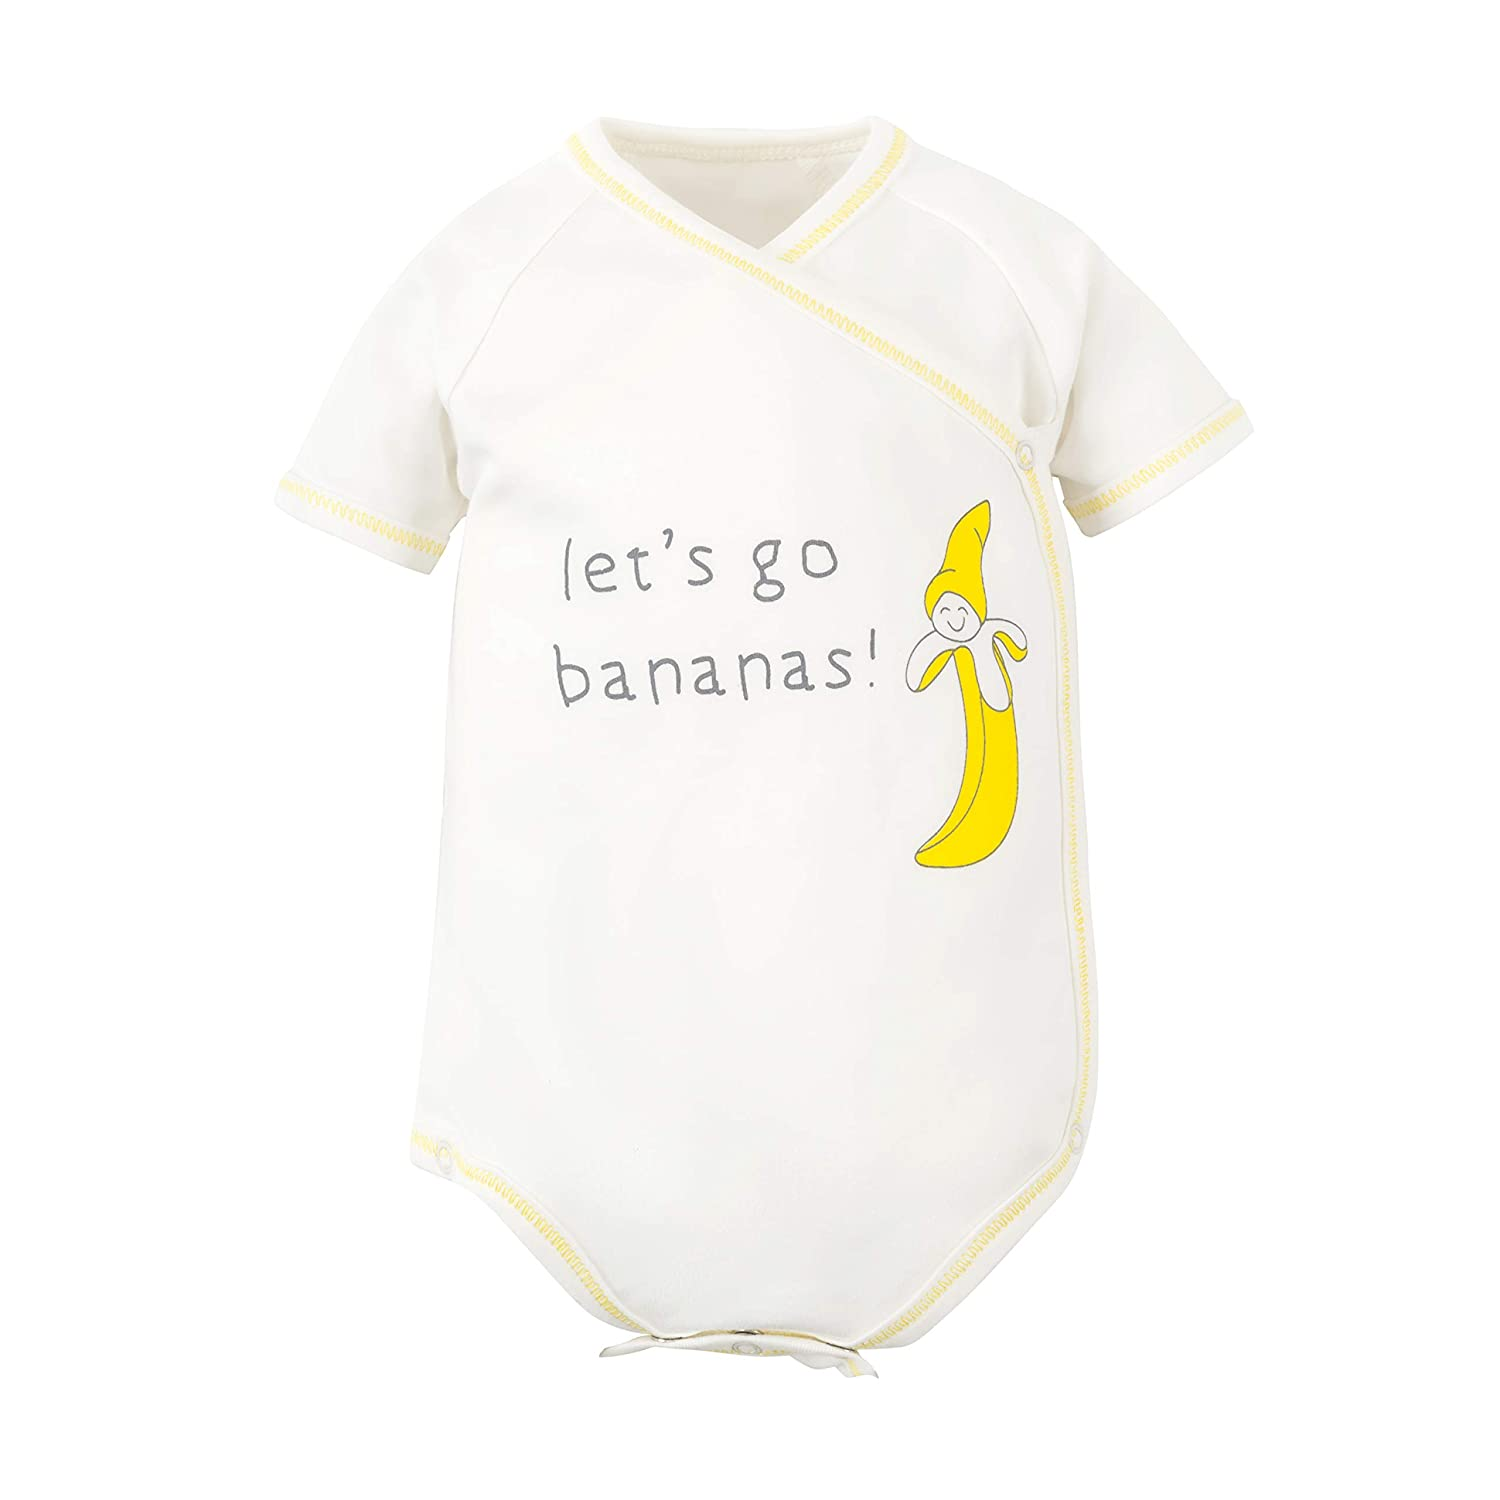 Under The Nile Organic Cotton Unisex Baby Banana Print Short Sleeve Side Snap Bodysuit, 6-9m